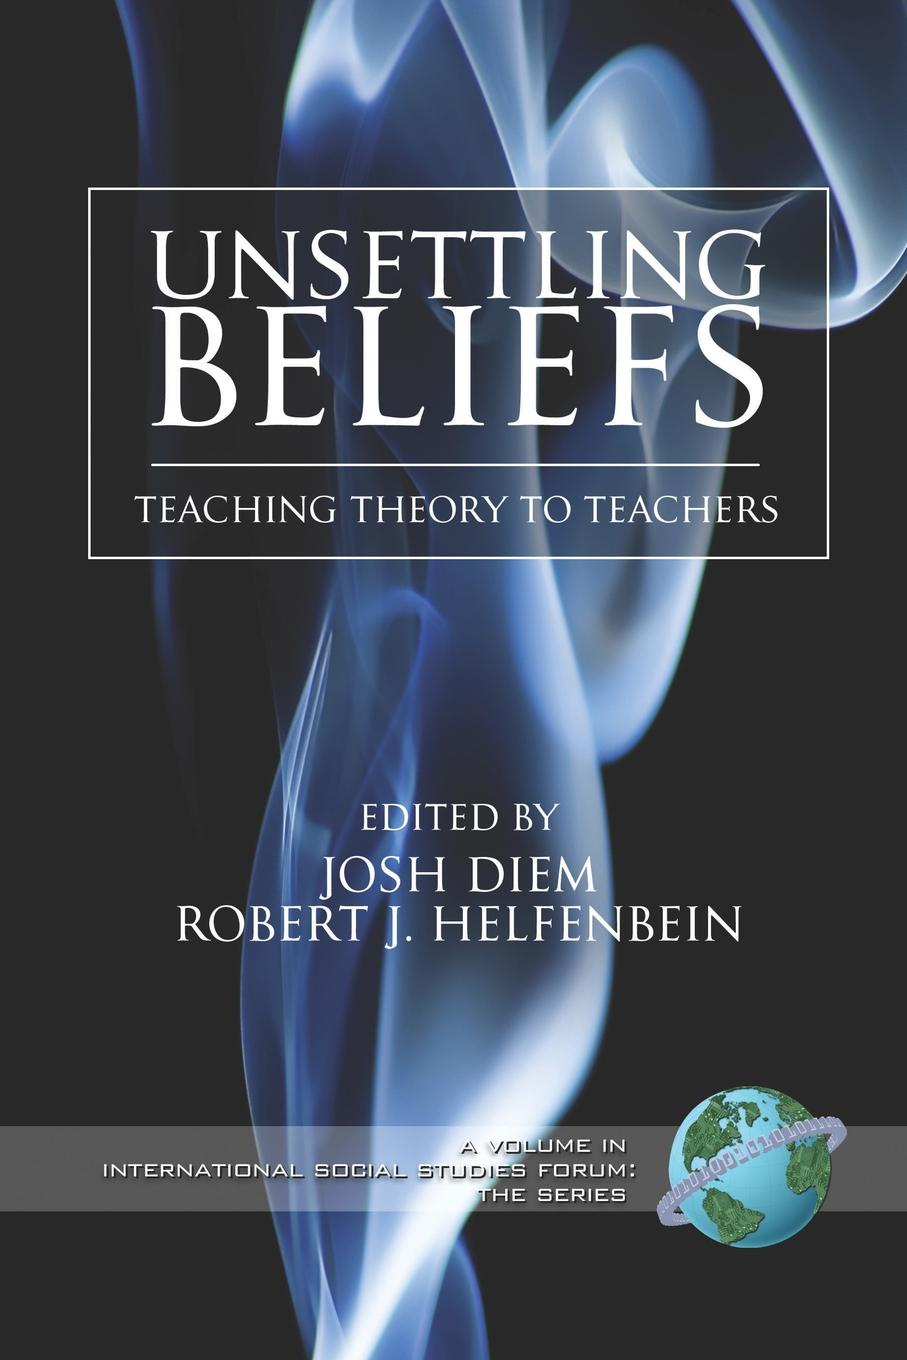 Unsettling Beliefs. Teaching Theory to Teachers (PB) mohamed mbarouk suleiman teachers experiences of teaching science with limited laboratory resources